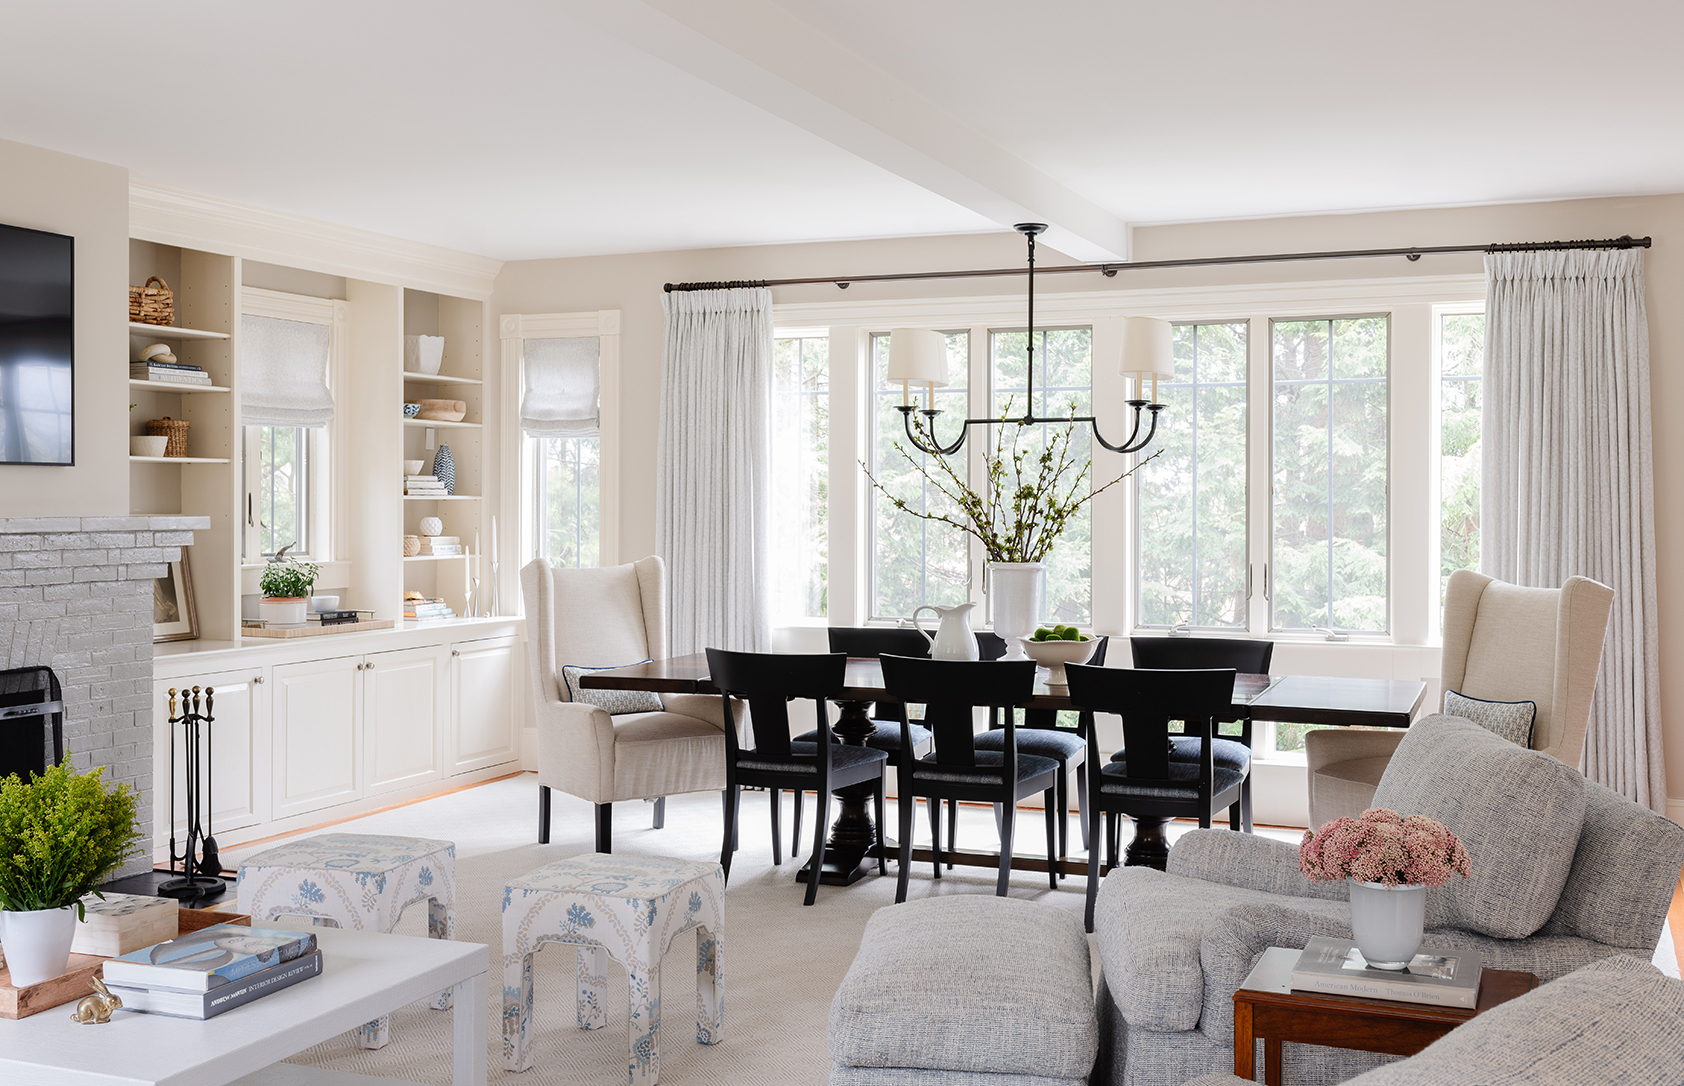 Great room with open plan and natural light